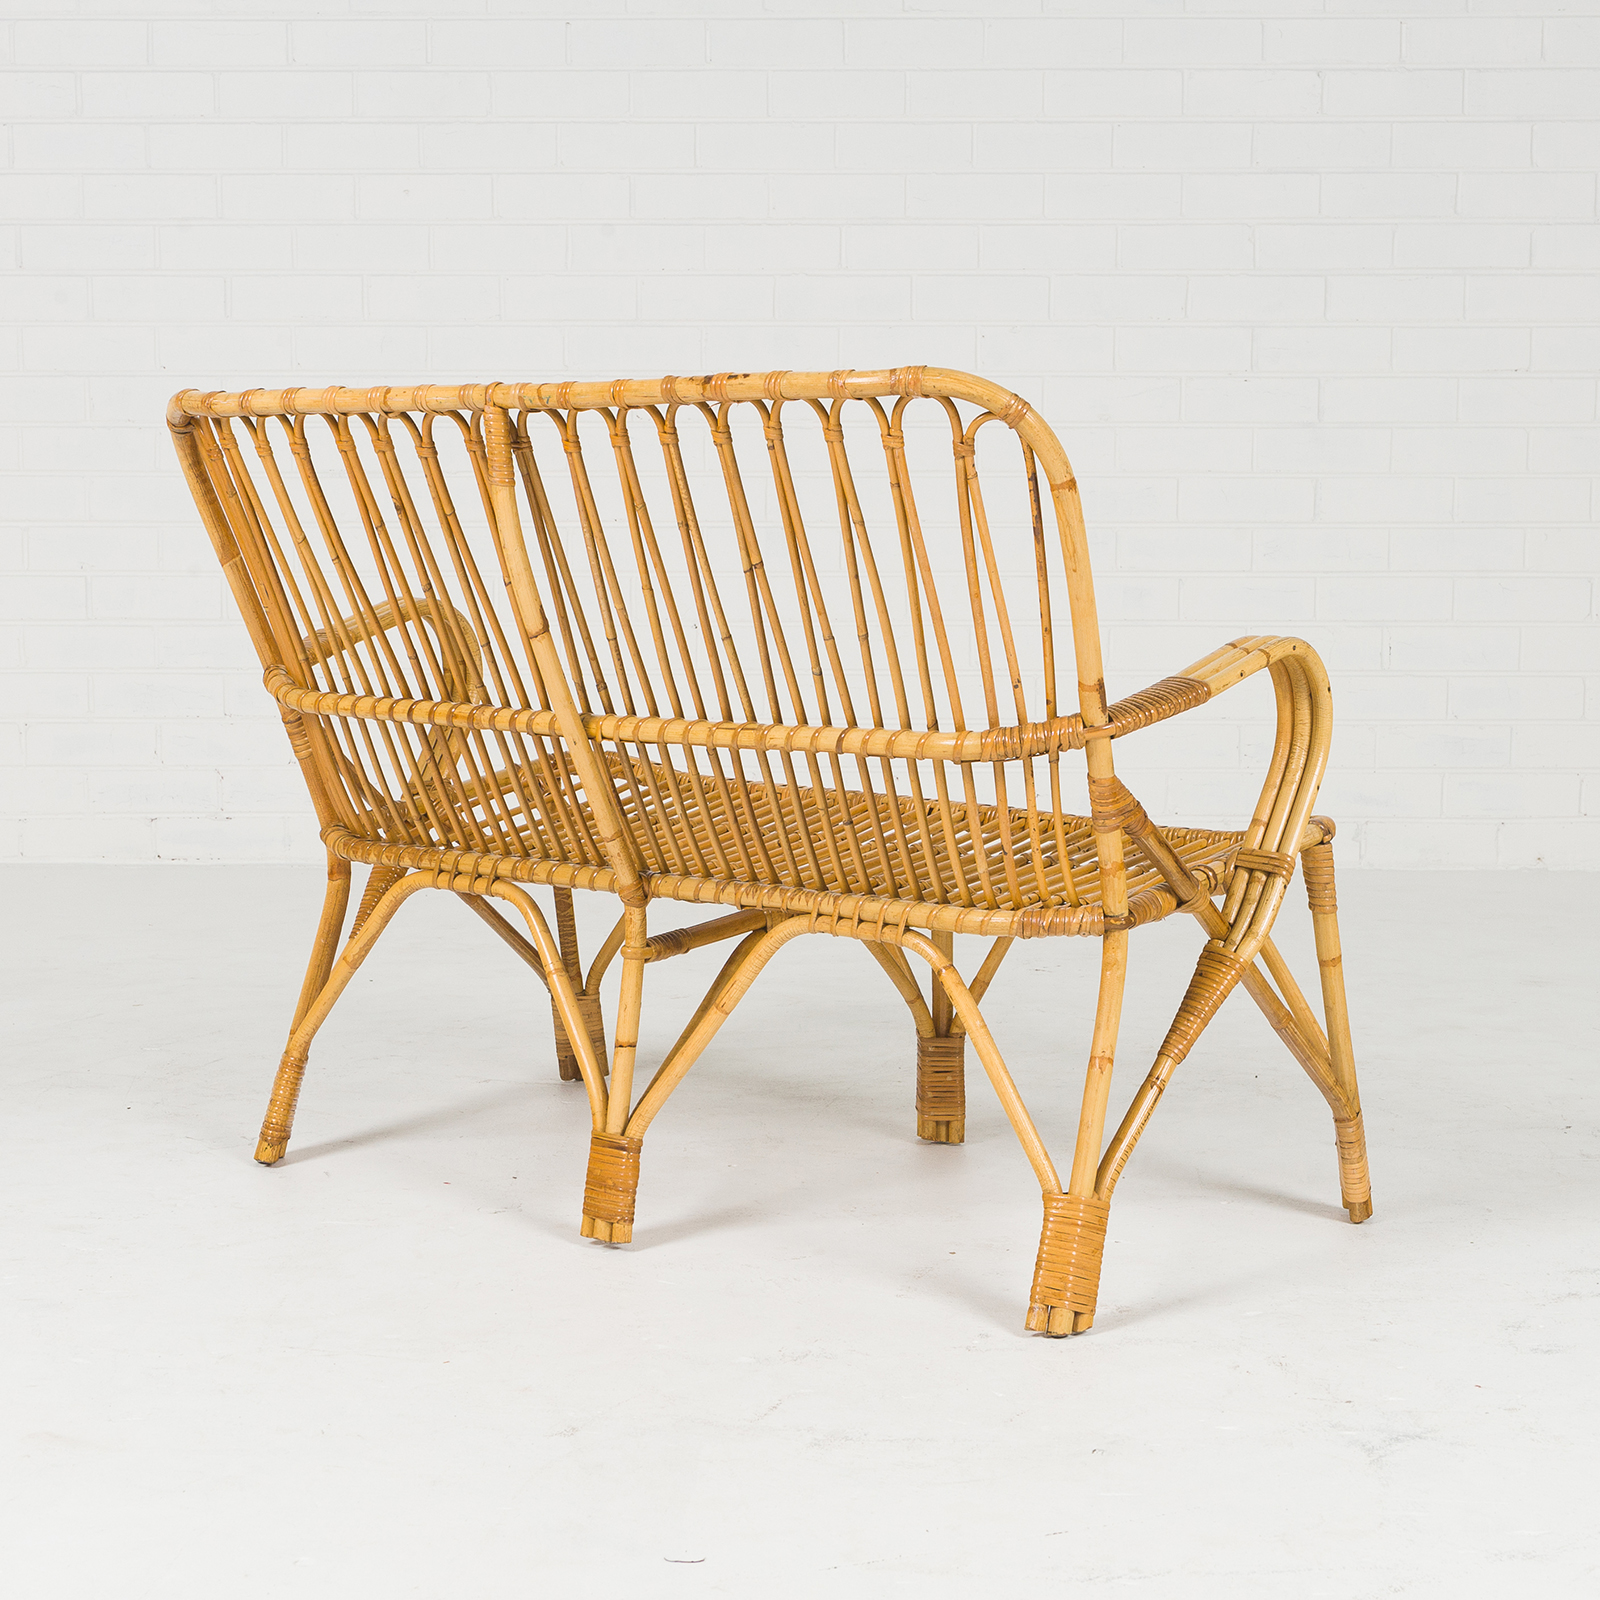 2 Seat Wicker Sofa In Bamboo With Coiled Socks 1960s Denmark 04